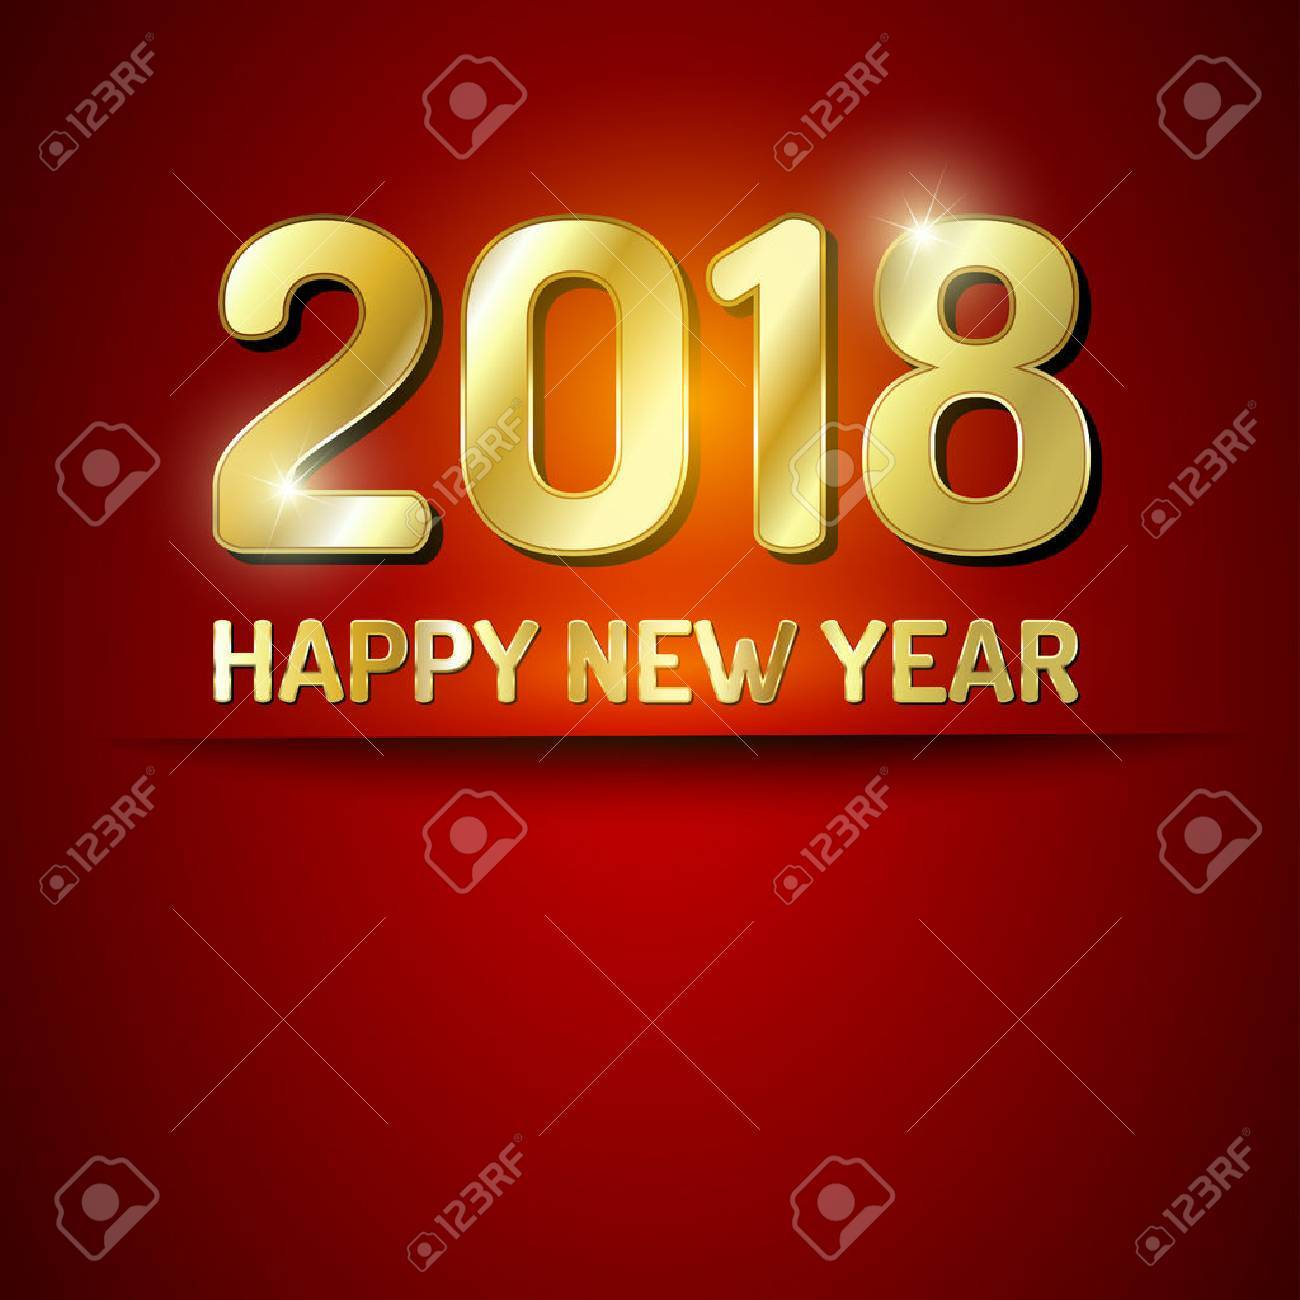 Red and gold greeting card for New Year 2018. - 44059046